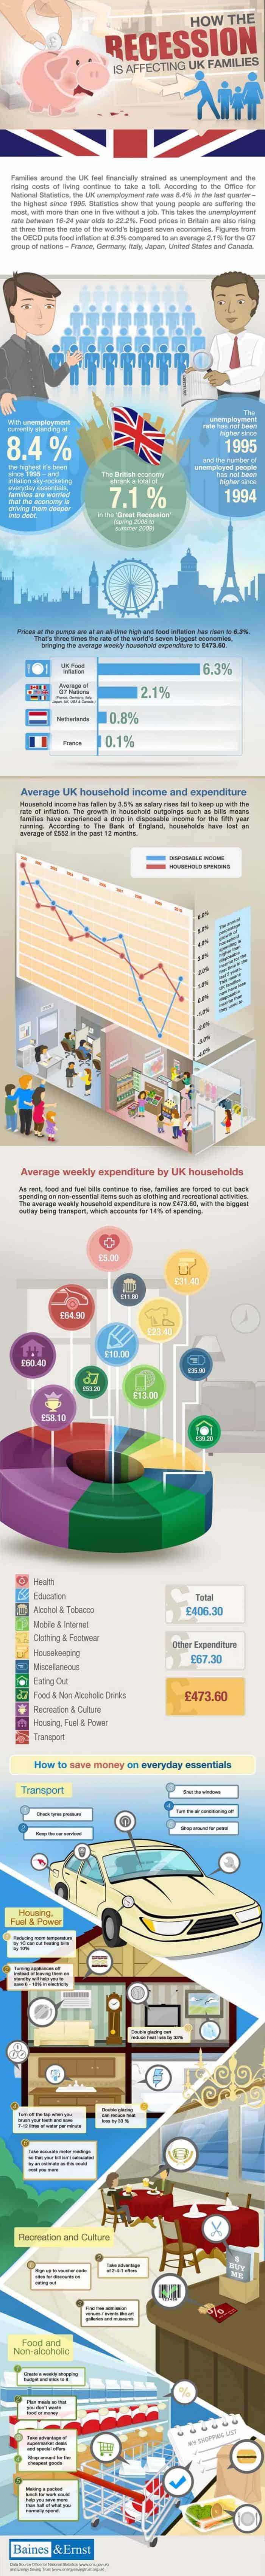 how-recession-affecting-uk-families-infographic